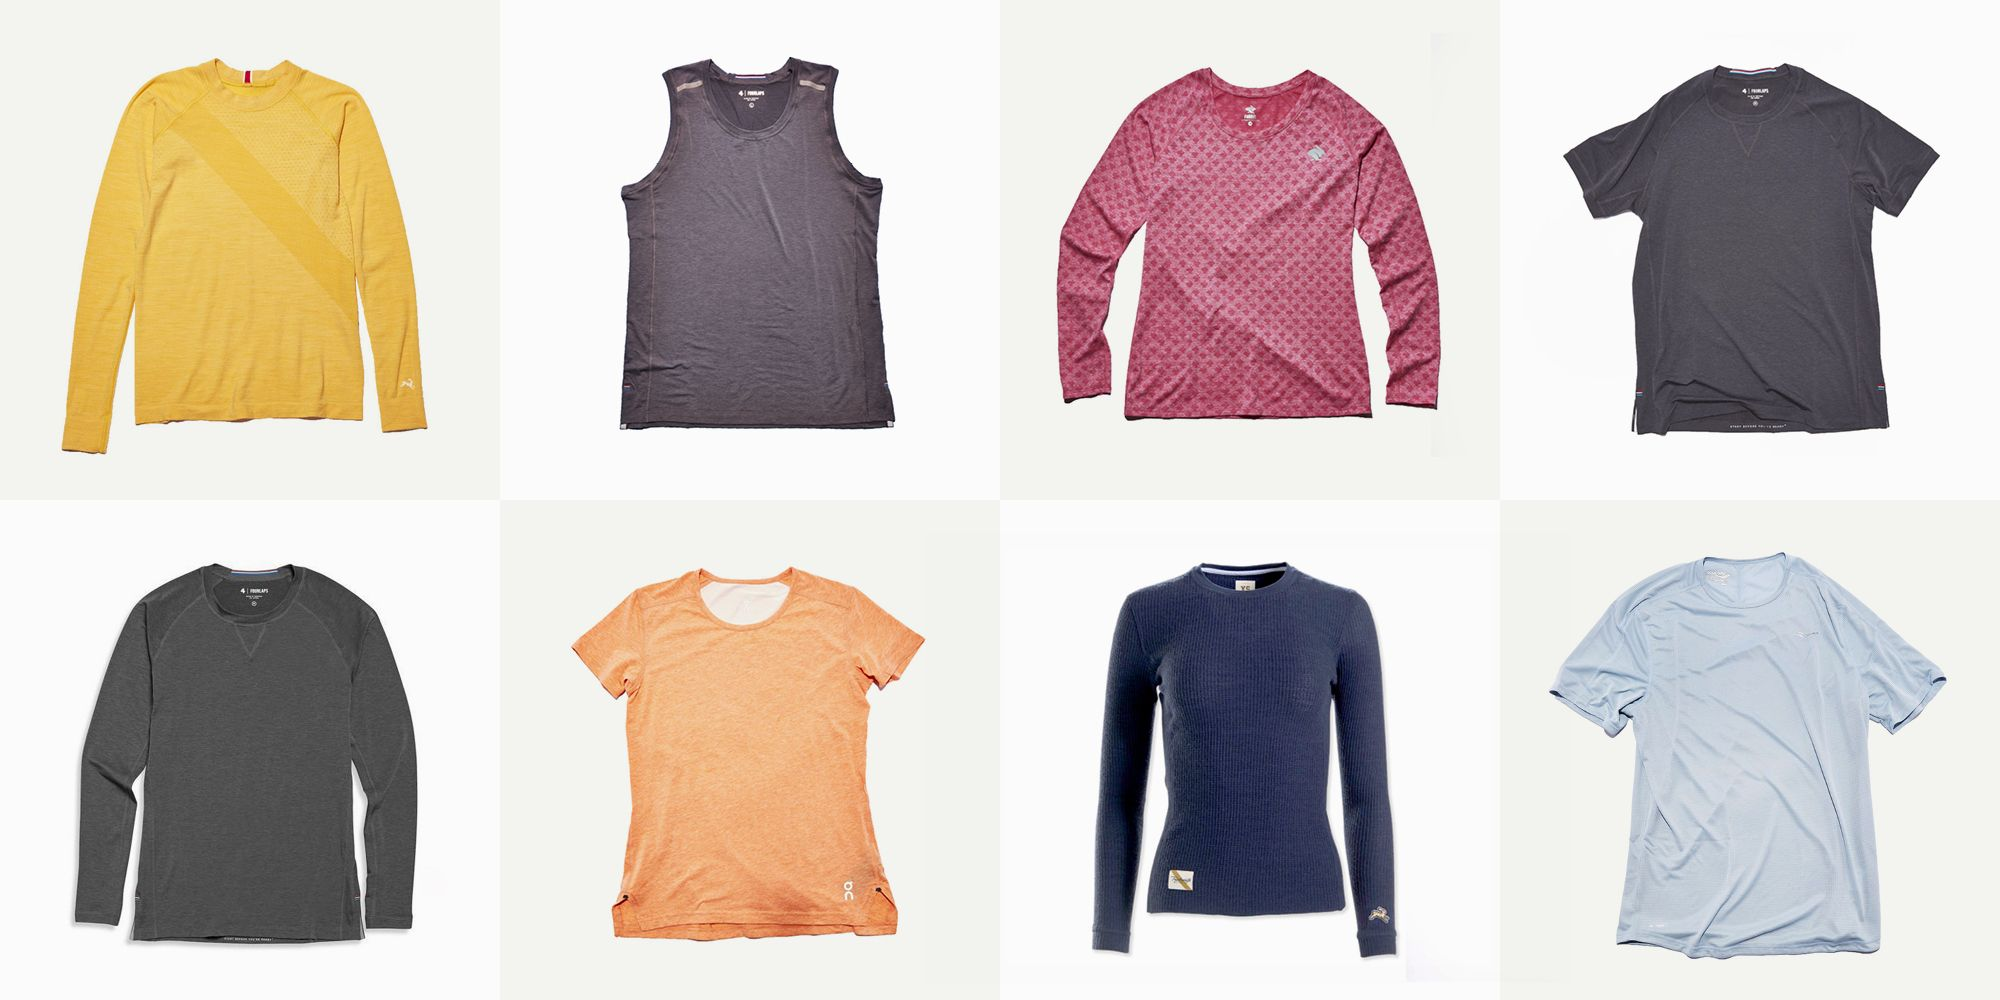 The Best New Running Tops for Your Spring Miles